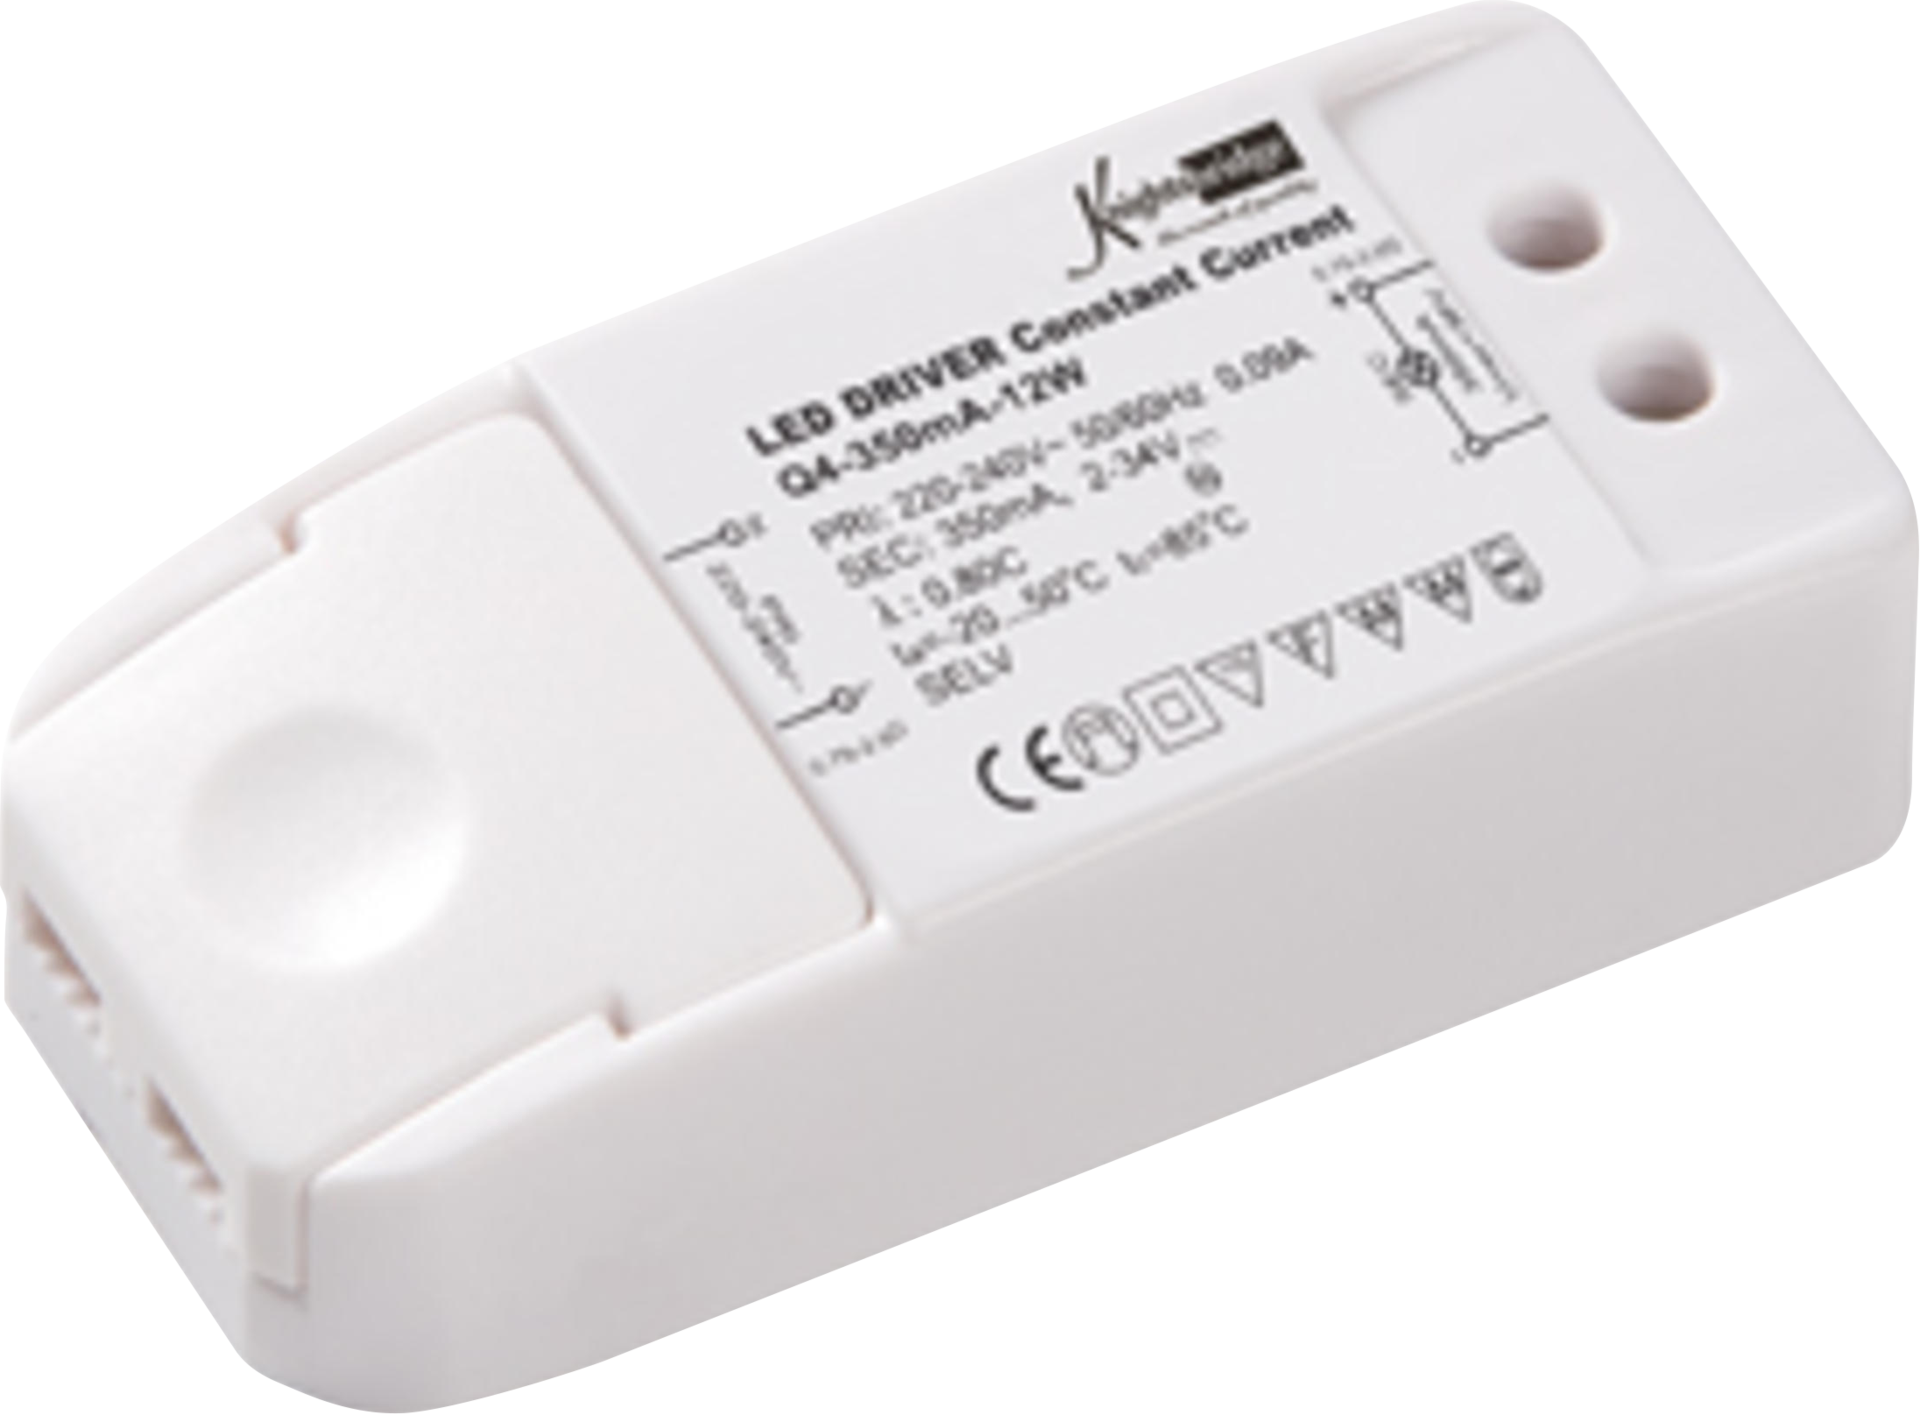 LED DRIVER 350 mA 12w CONSTANT CURRENT